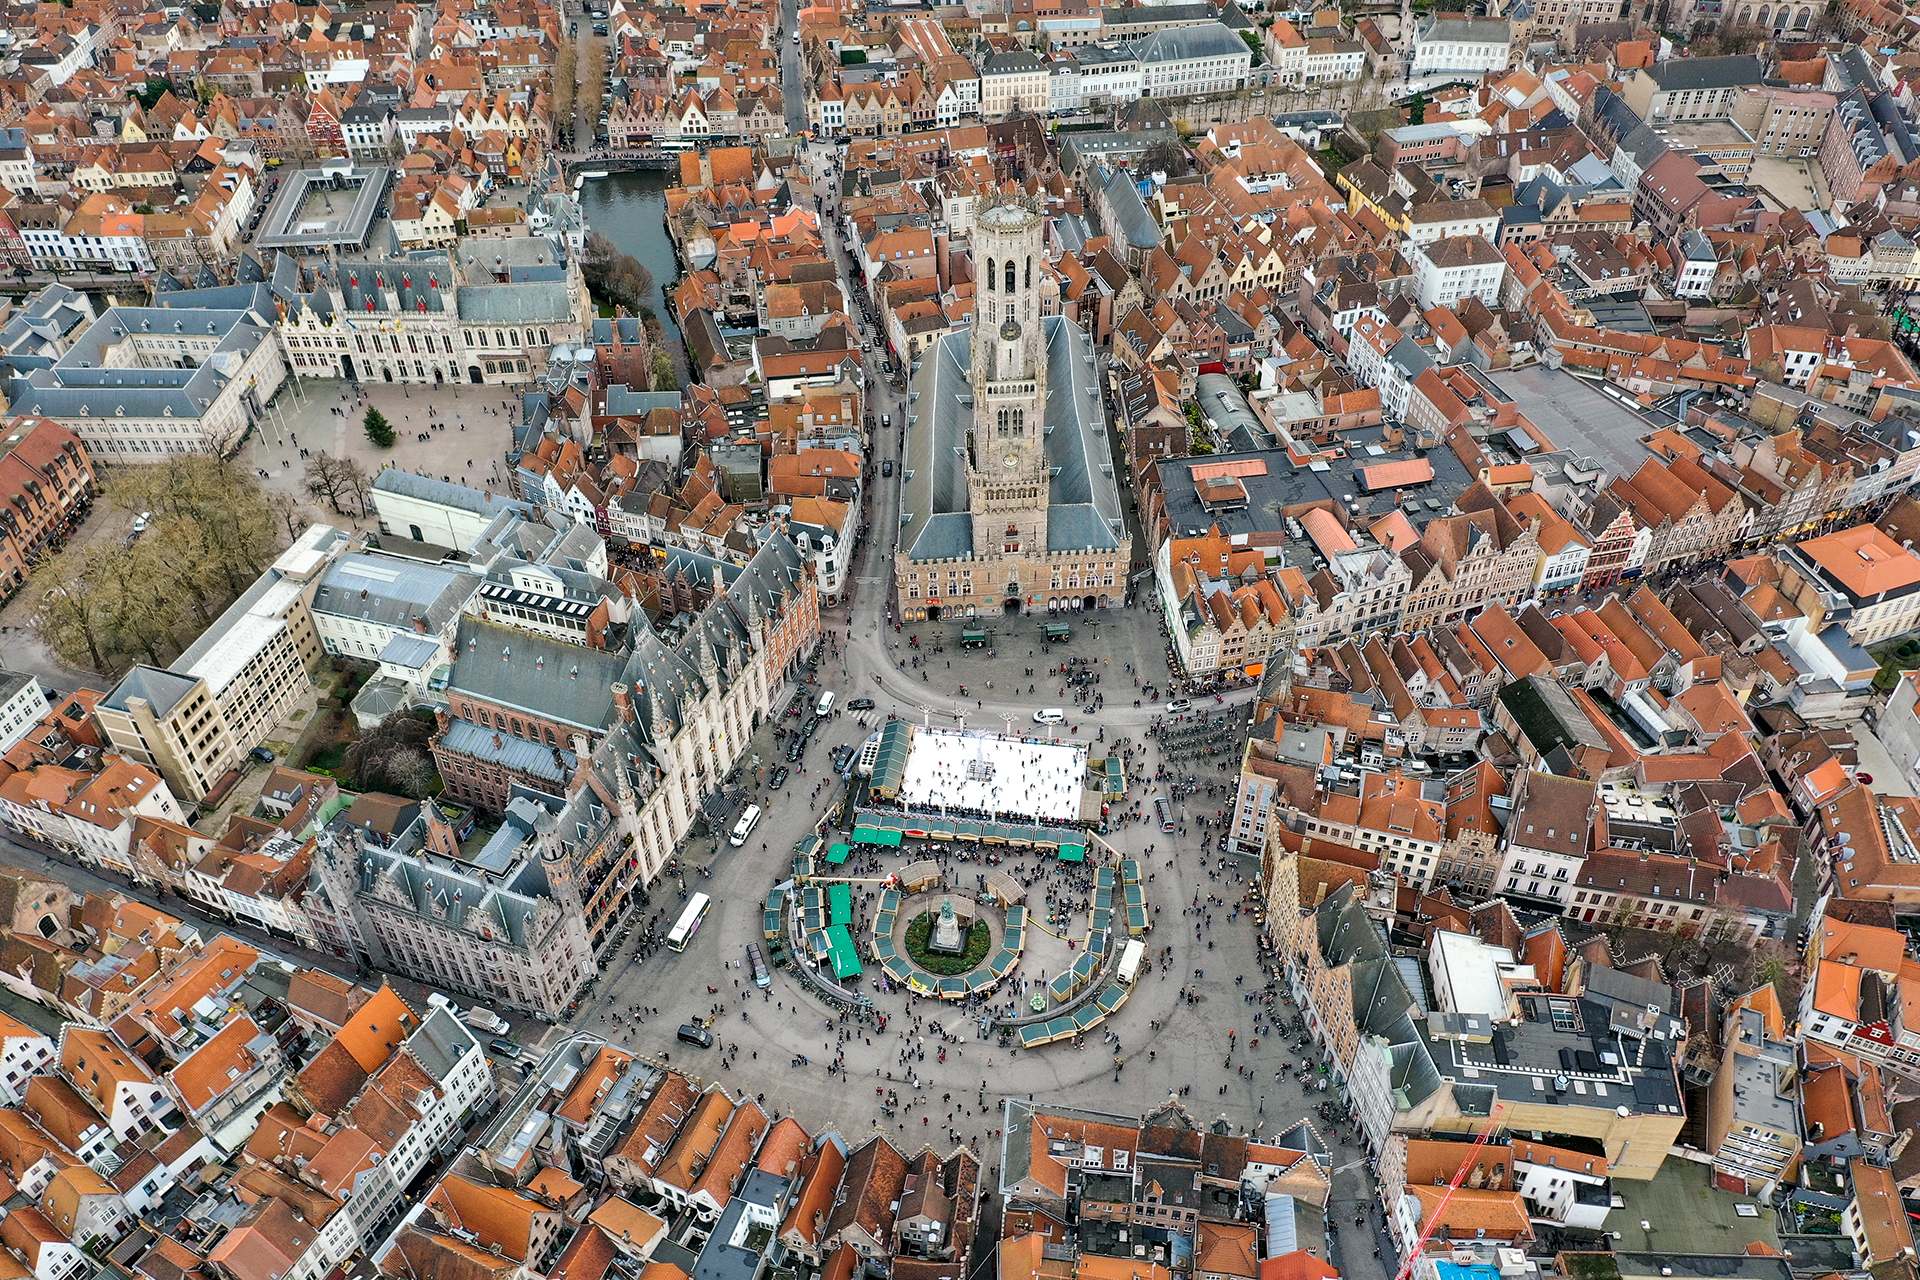 Bruges Aerial City View feat. Belfry of Bruges and Market Square in Belgium